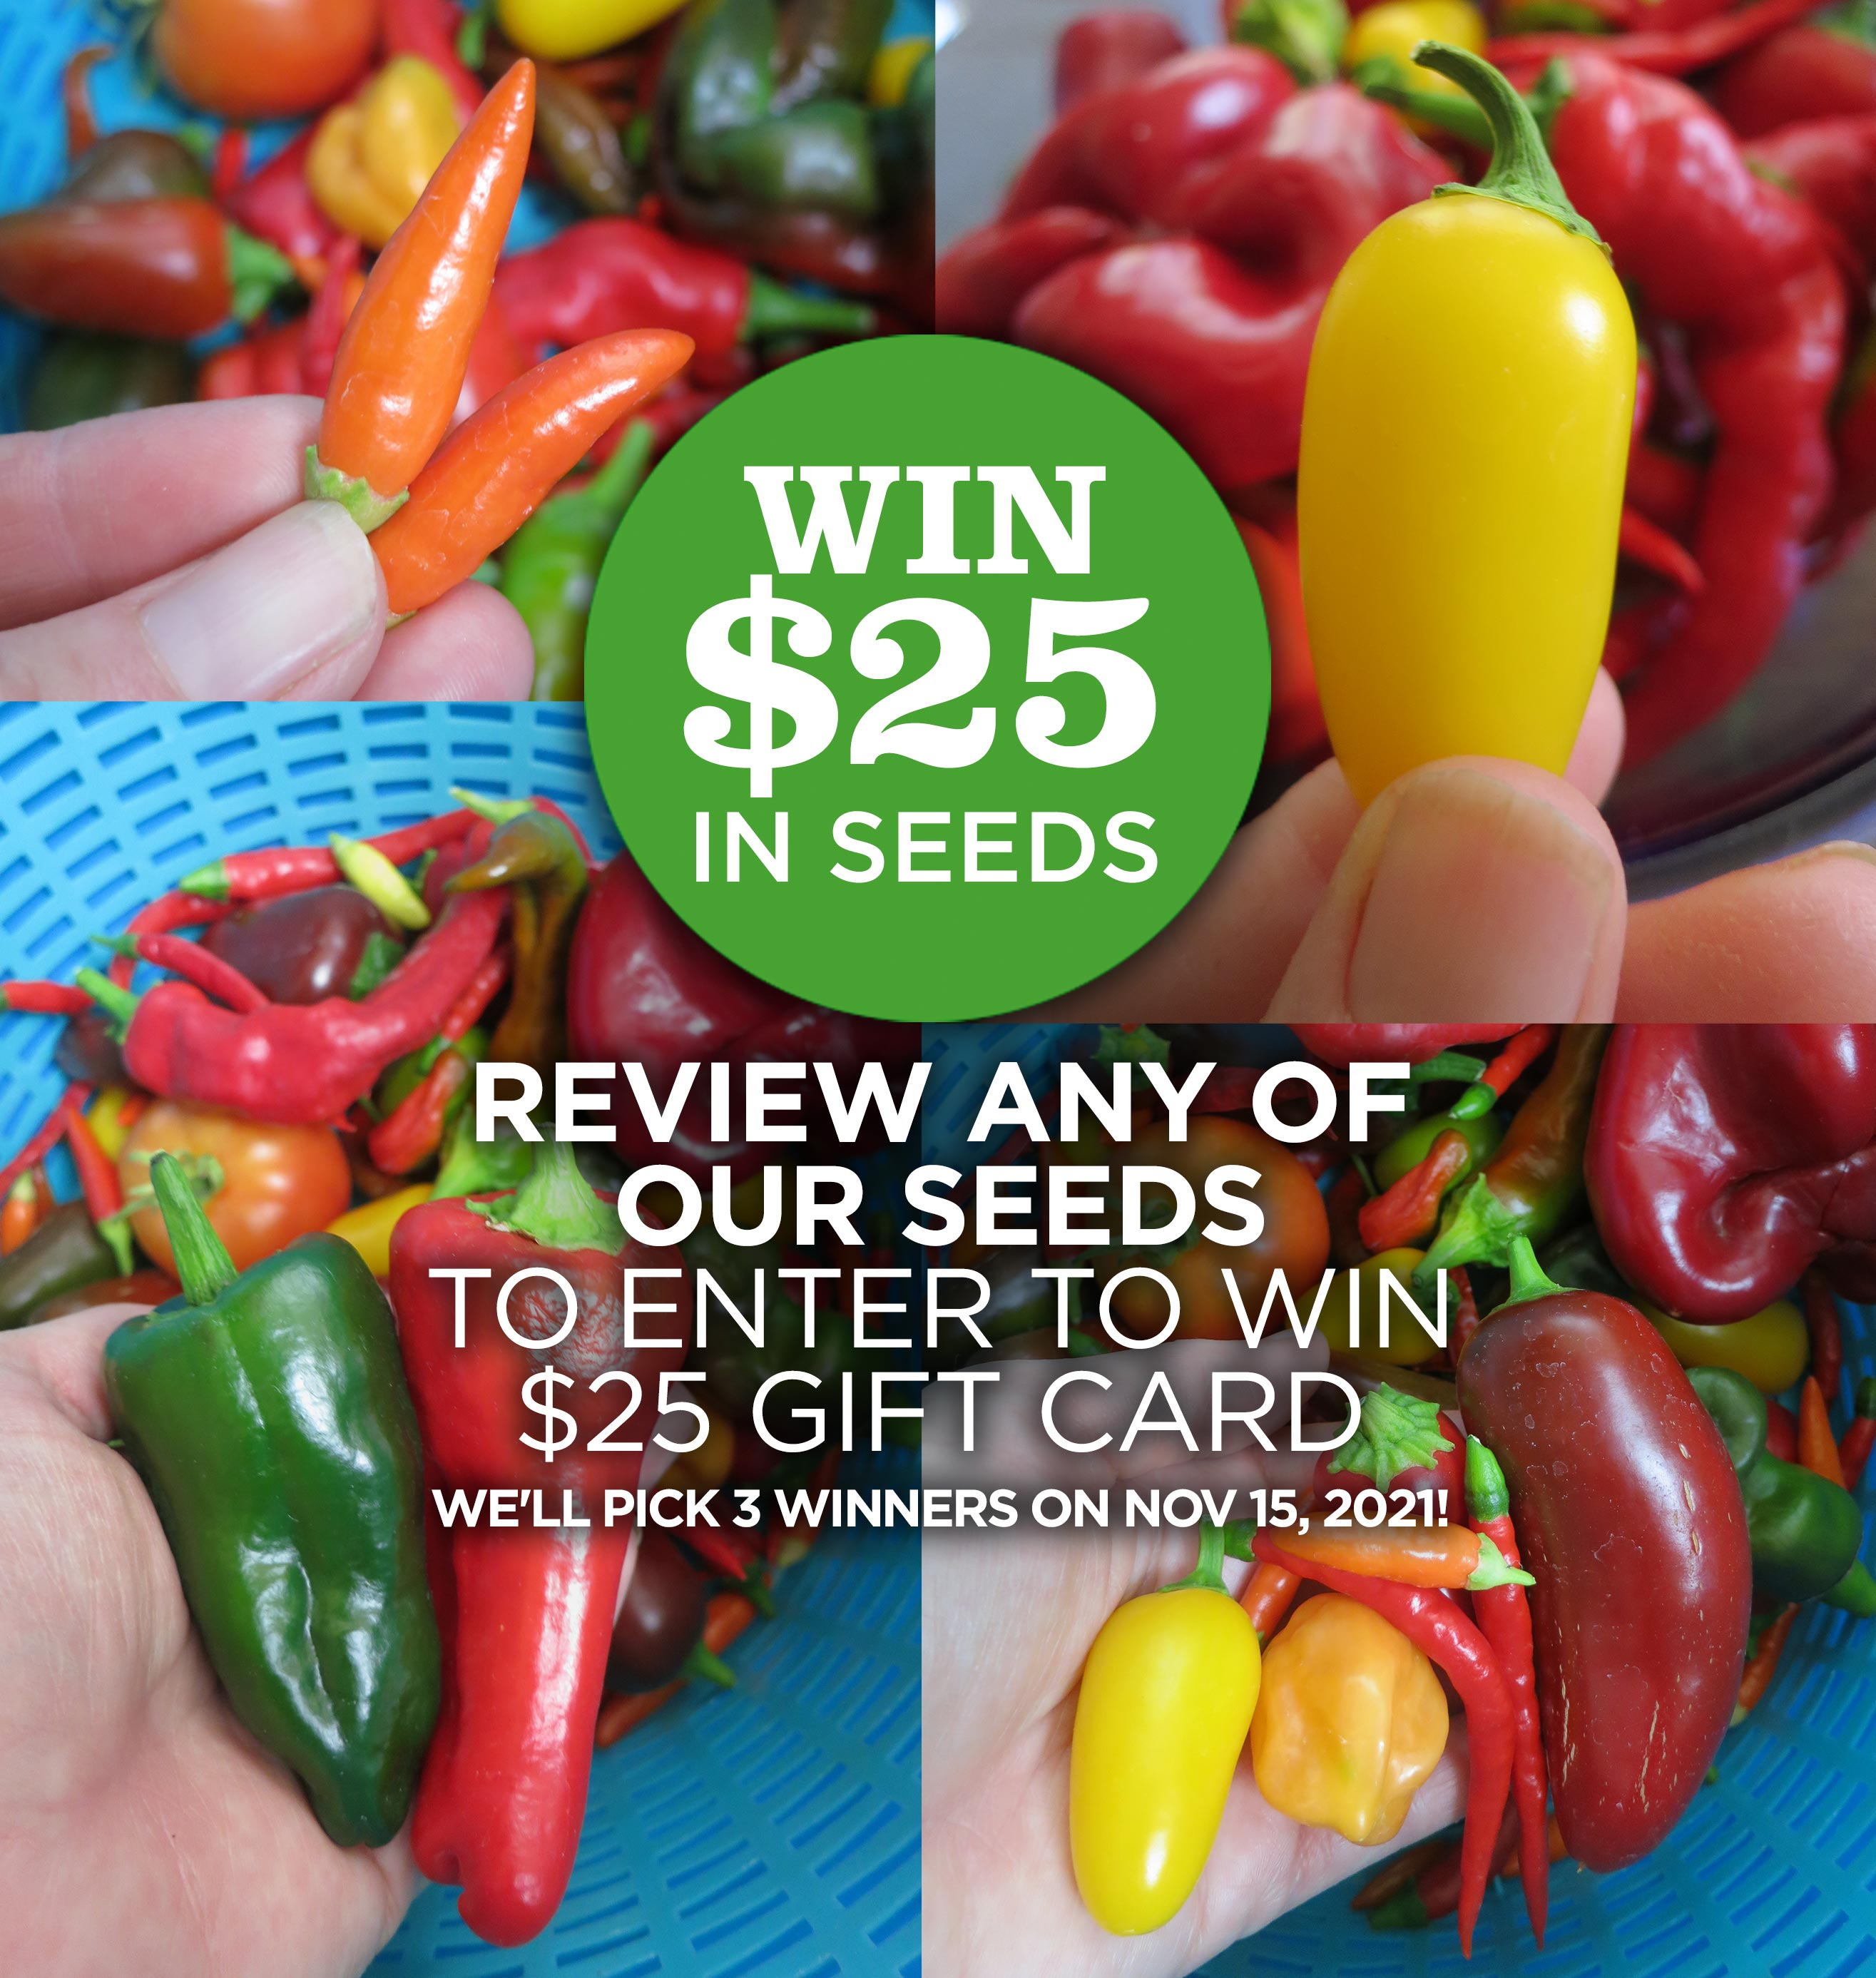 Win $25 in Free Seeds - Review any of our seeds to enter to win a $25 gift card - we'll pick 3 lucky winners on Nov 15, 2021